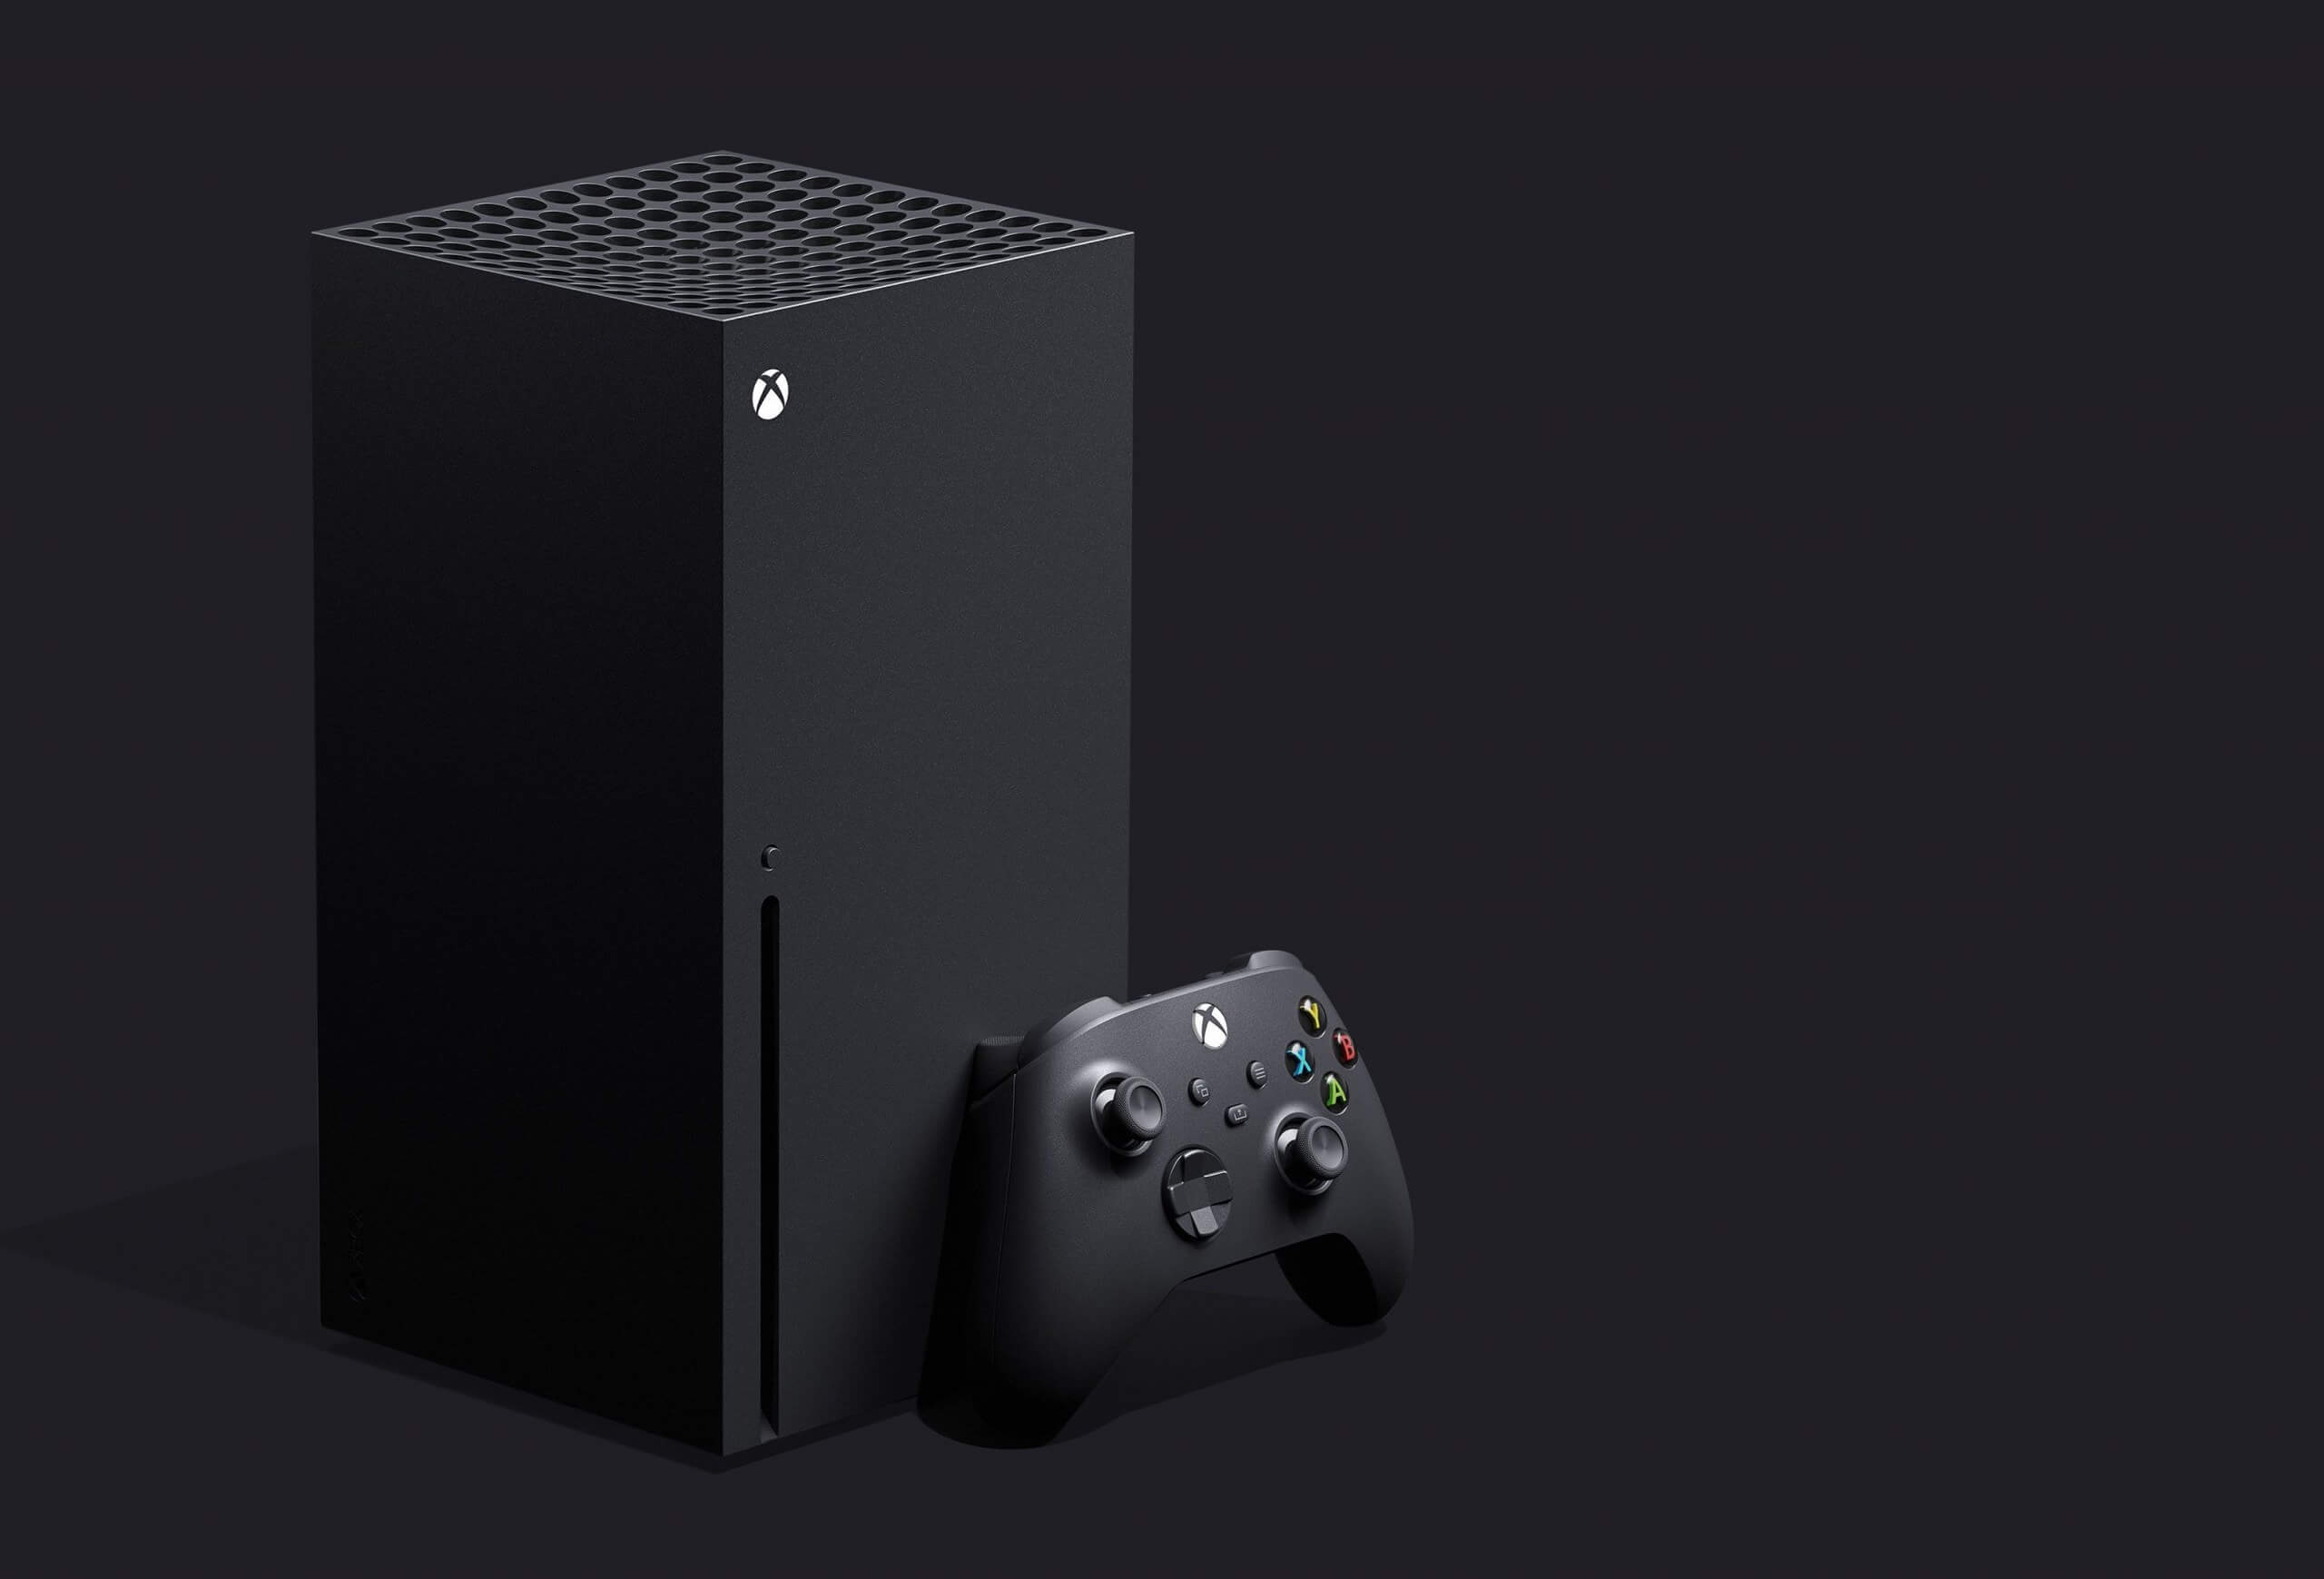 Xbox Series X specs revealed, aims for